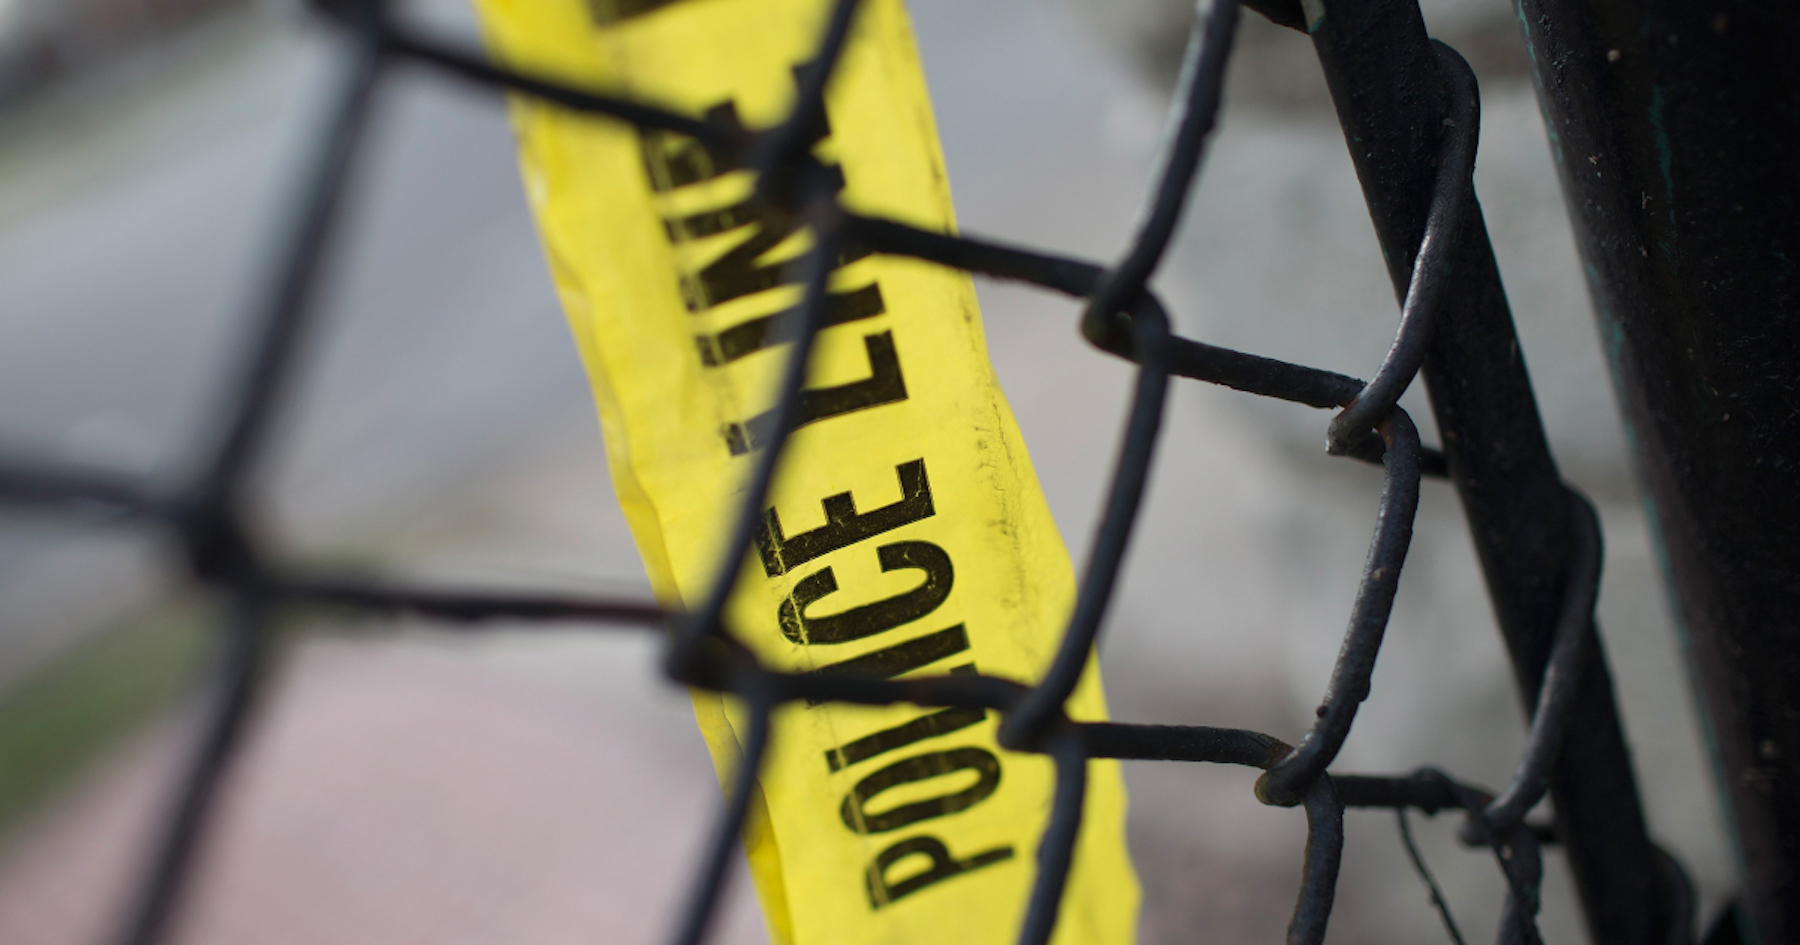 A person opened fire Oct. 13, 2021, outside a South Side elementary school.